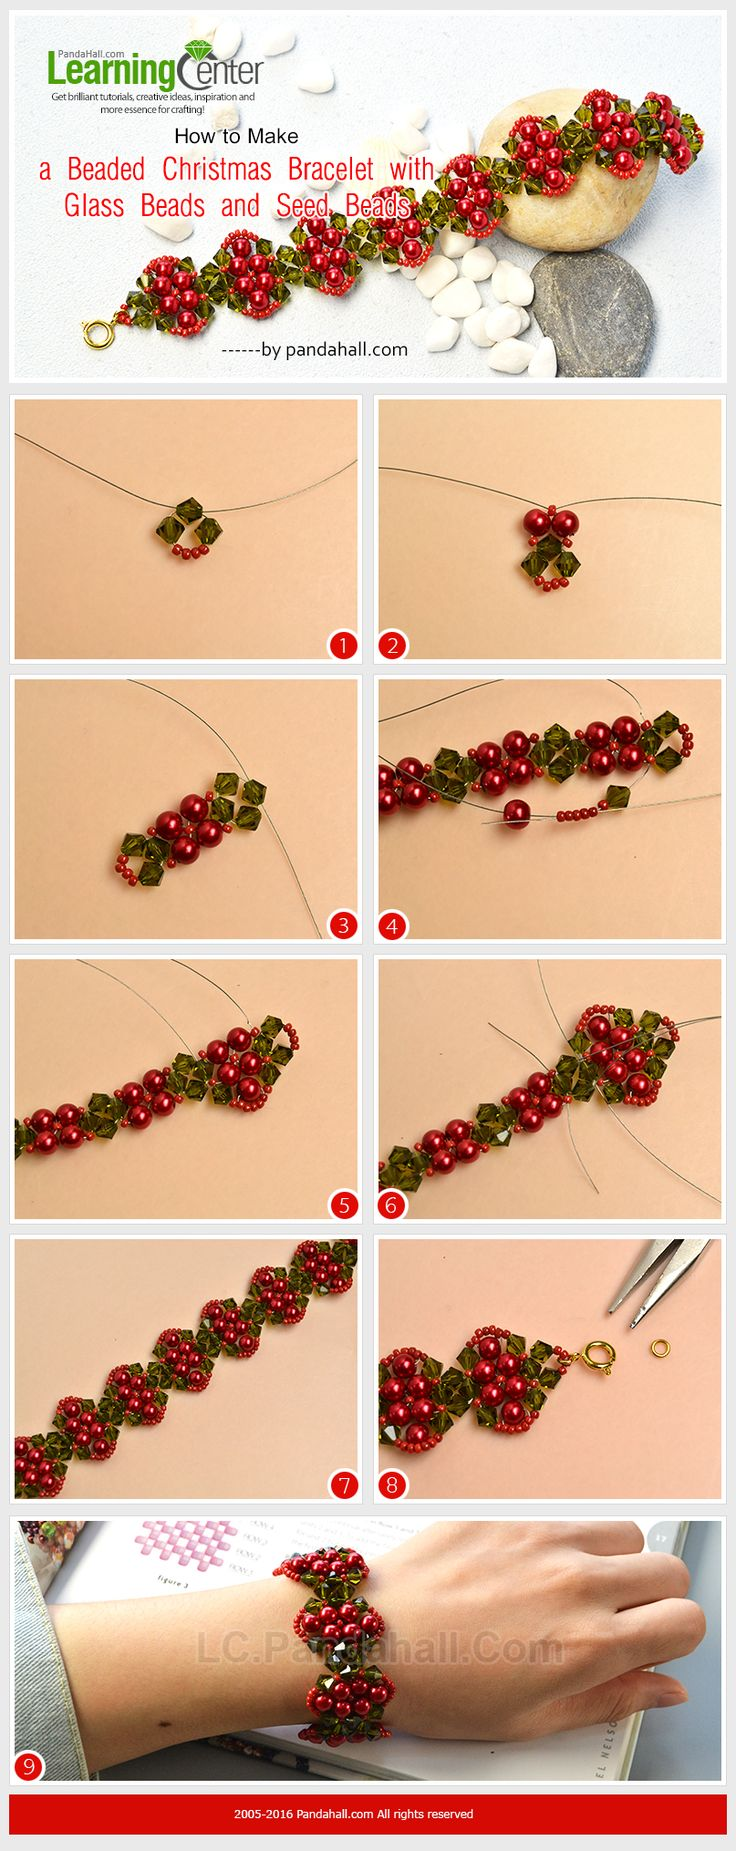 How to Make a Beaded Christmas Bracelet with Glass Beads and Seed Beads